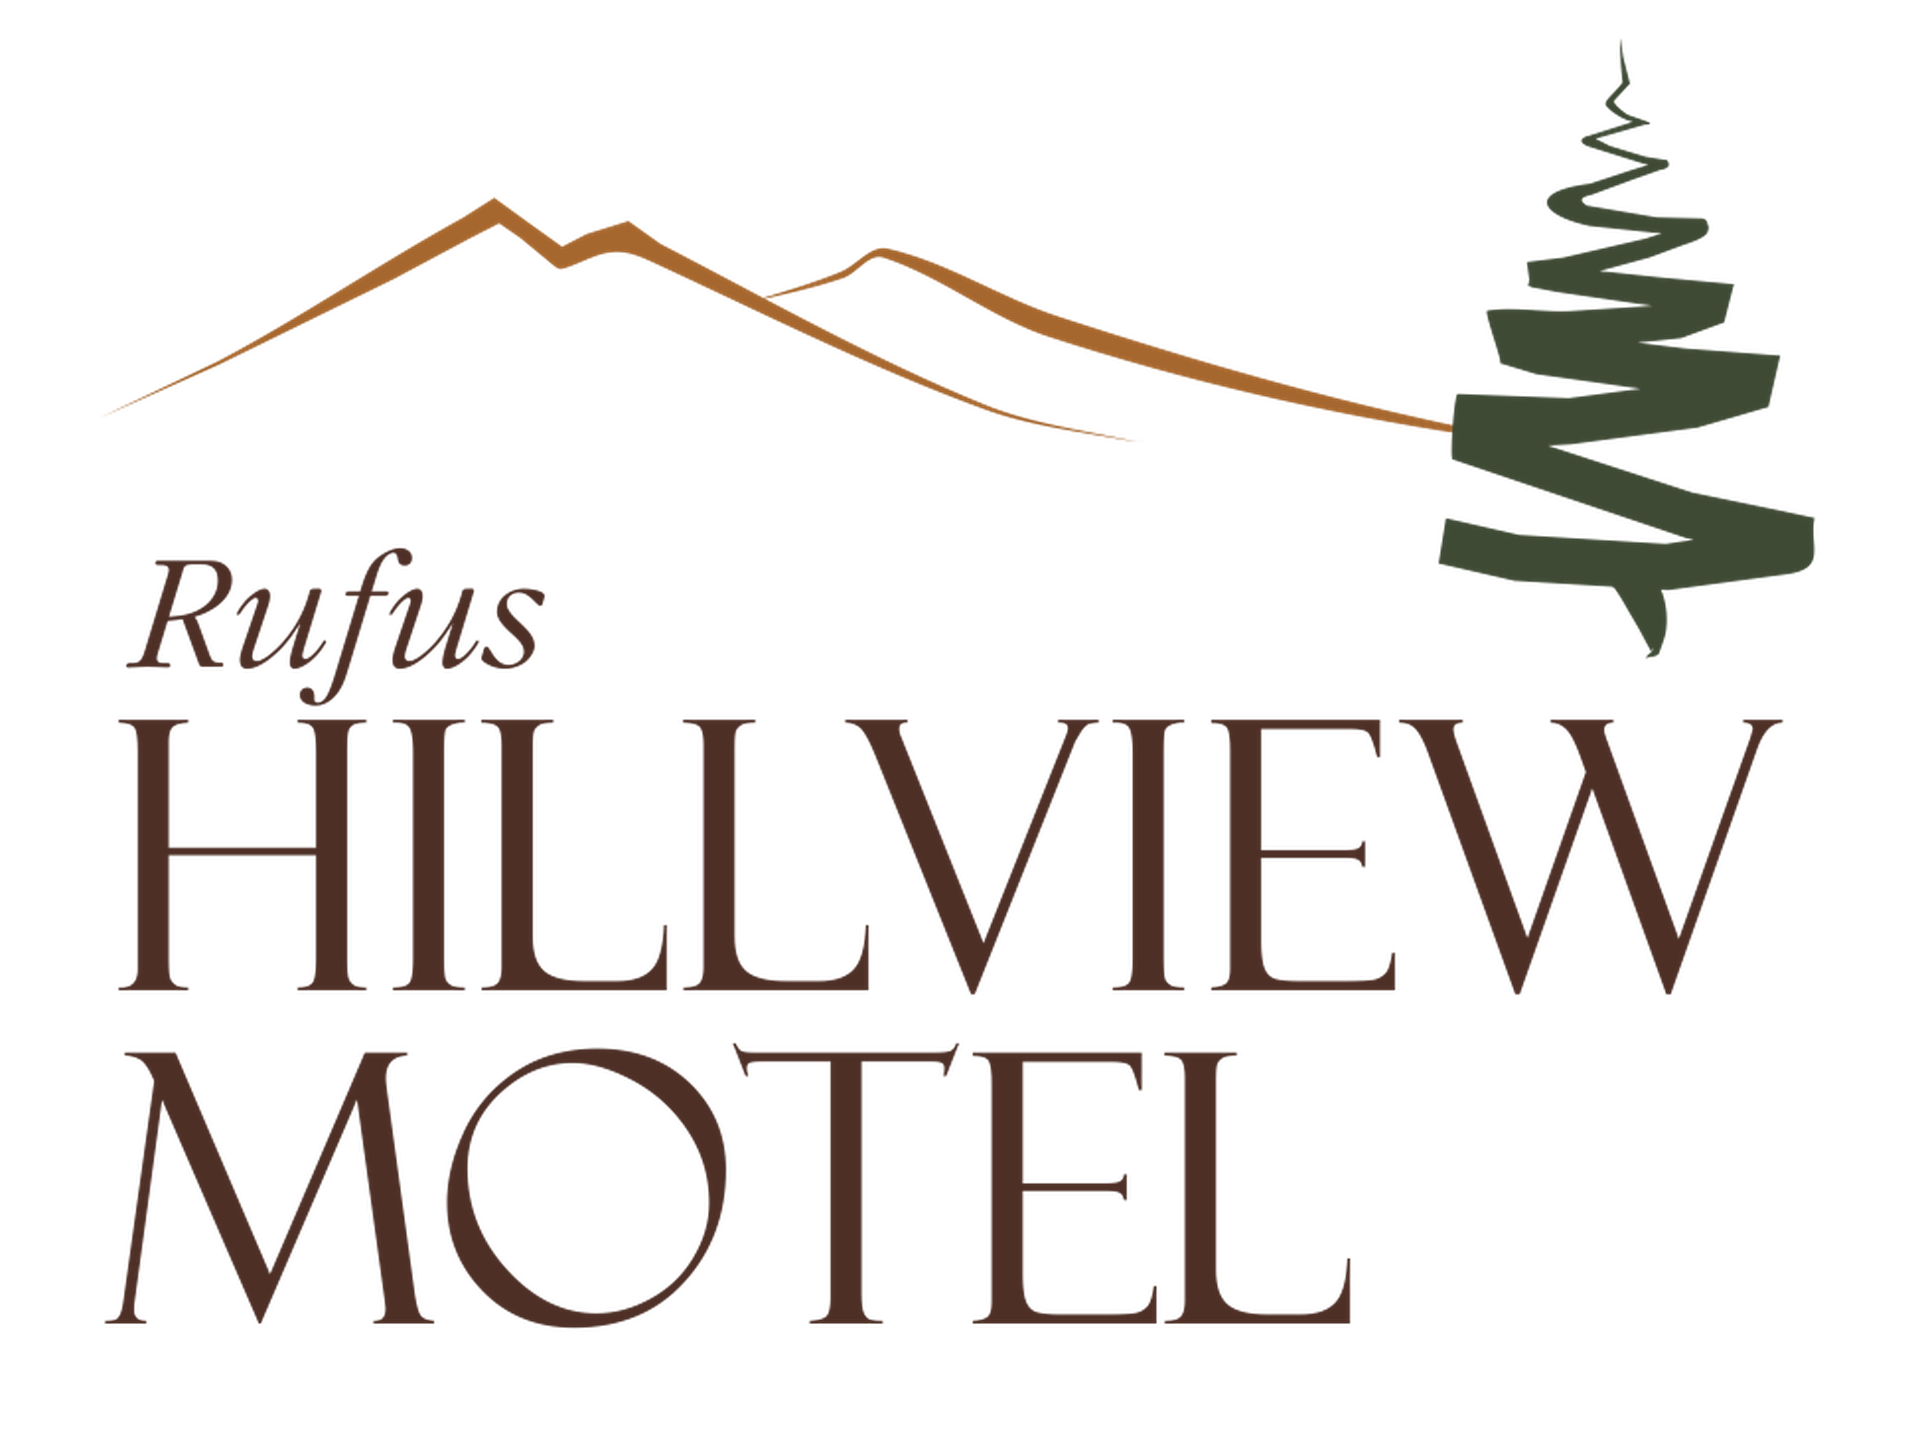 Rufus Hillview Inn